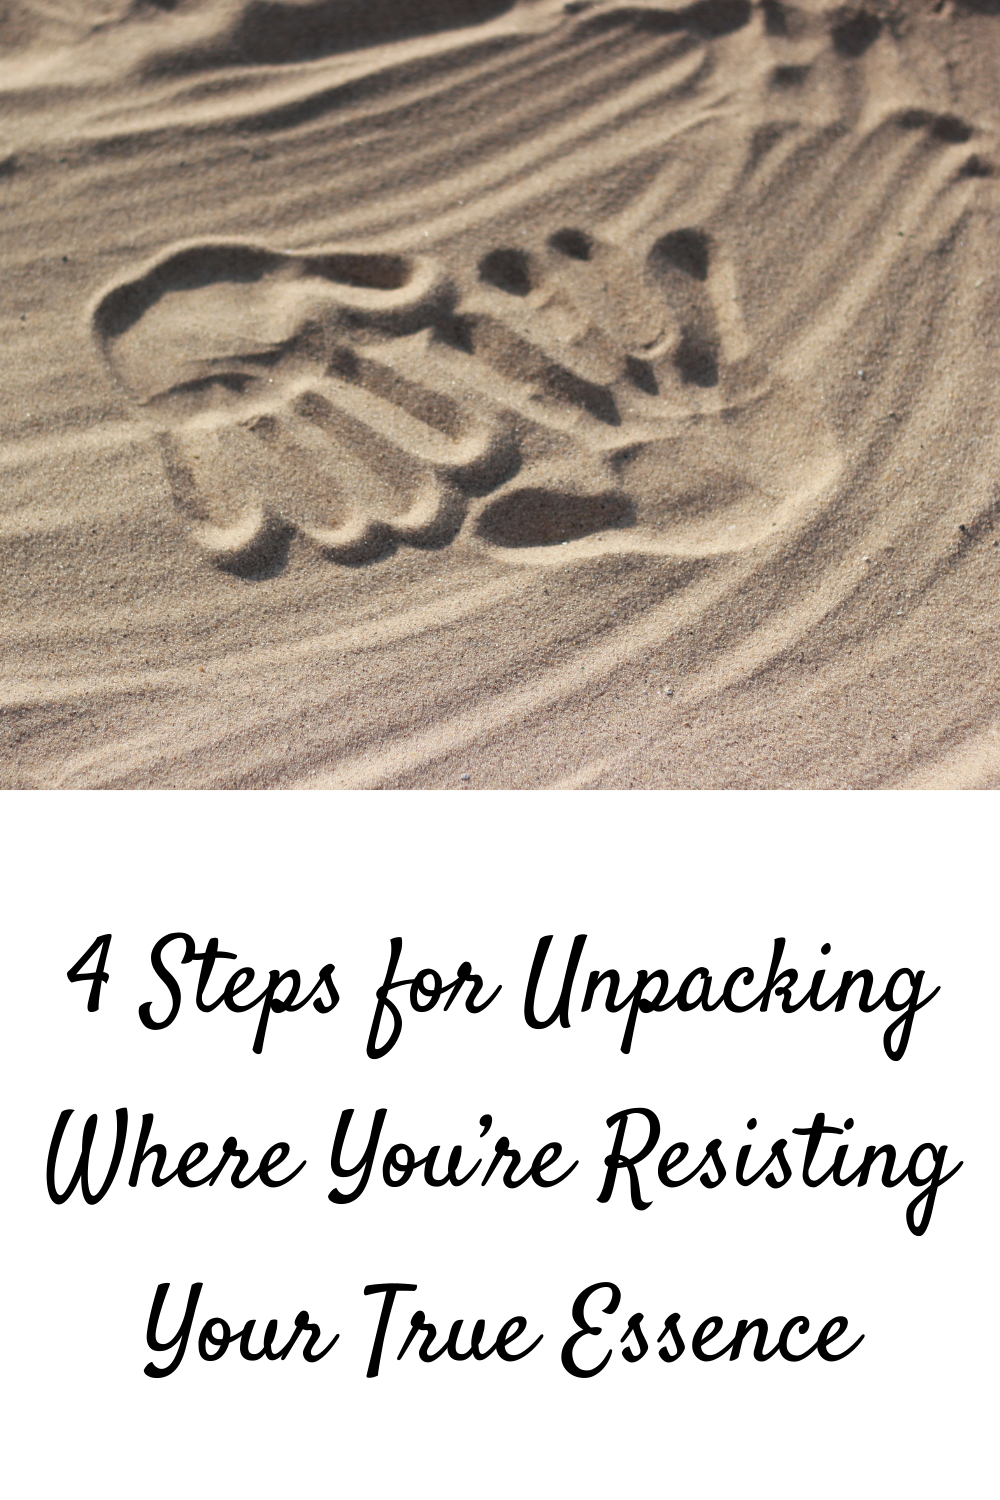 4 Steps for Unpacking Where You're Resisting Your True Essence